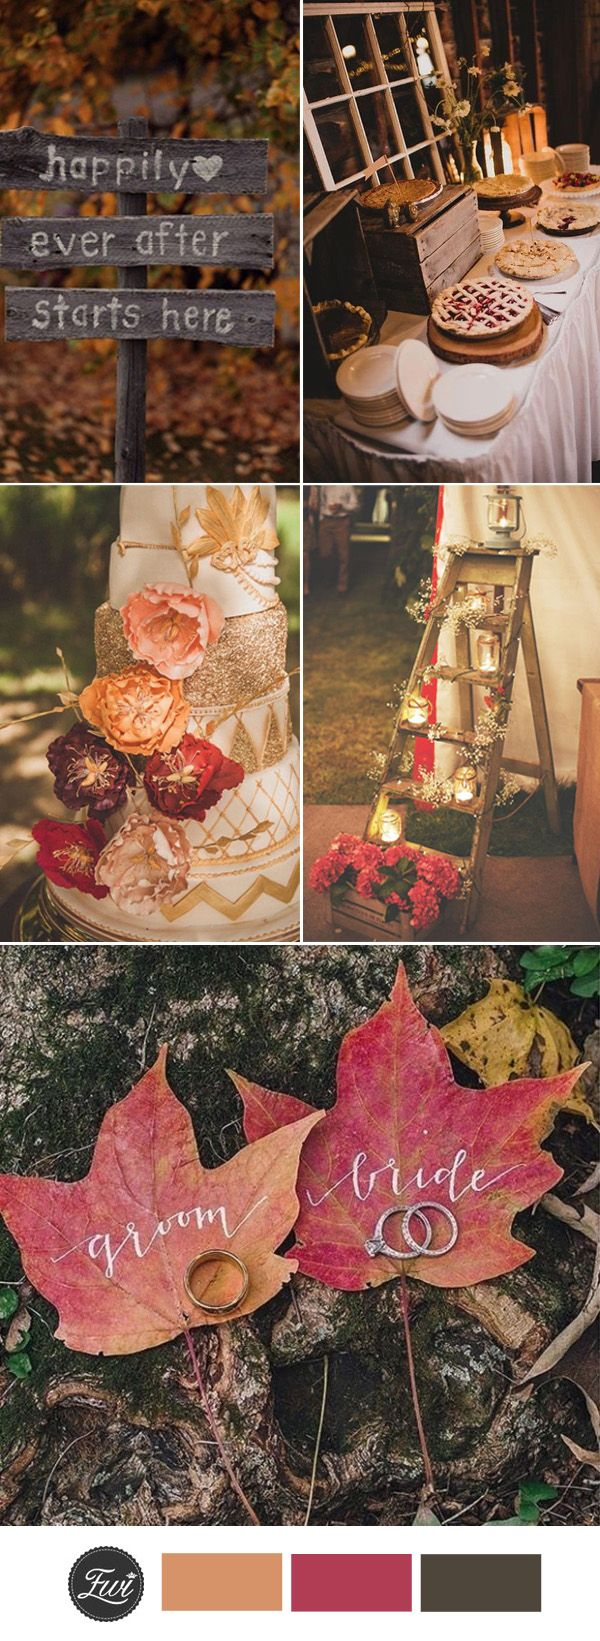 top 10 fall wedding color ideas for 2017 trends - Fall Colors For A Wedding